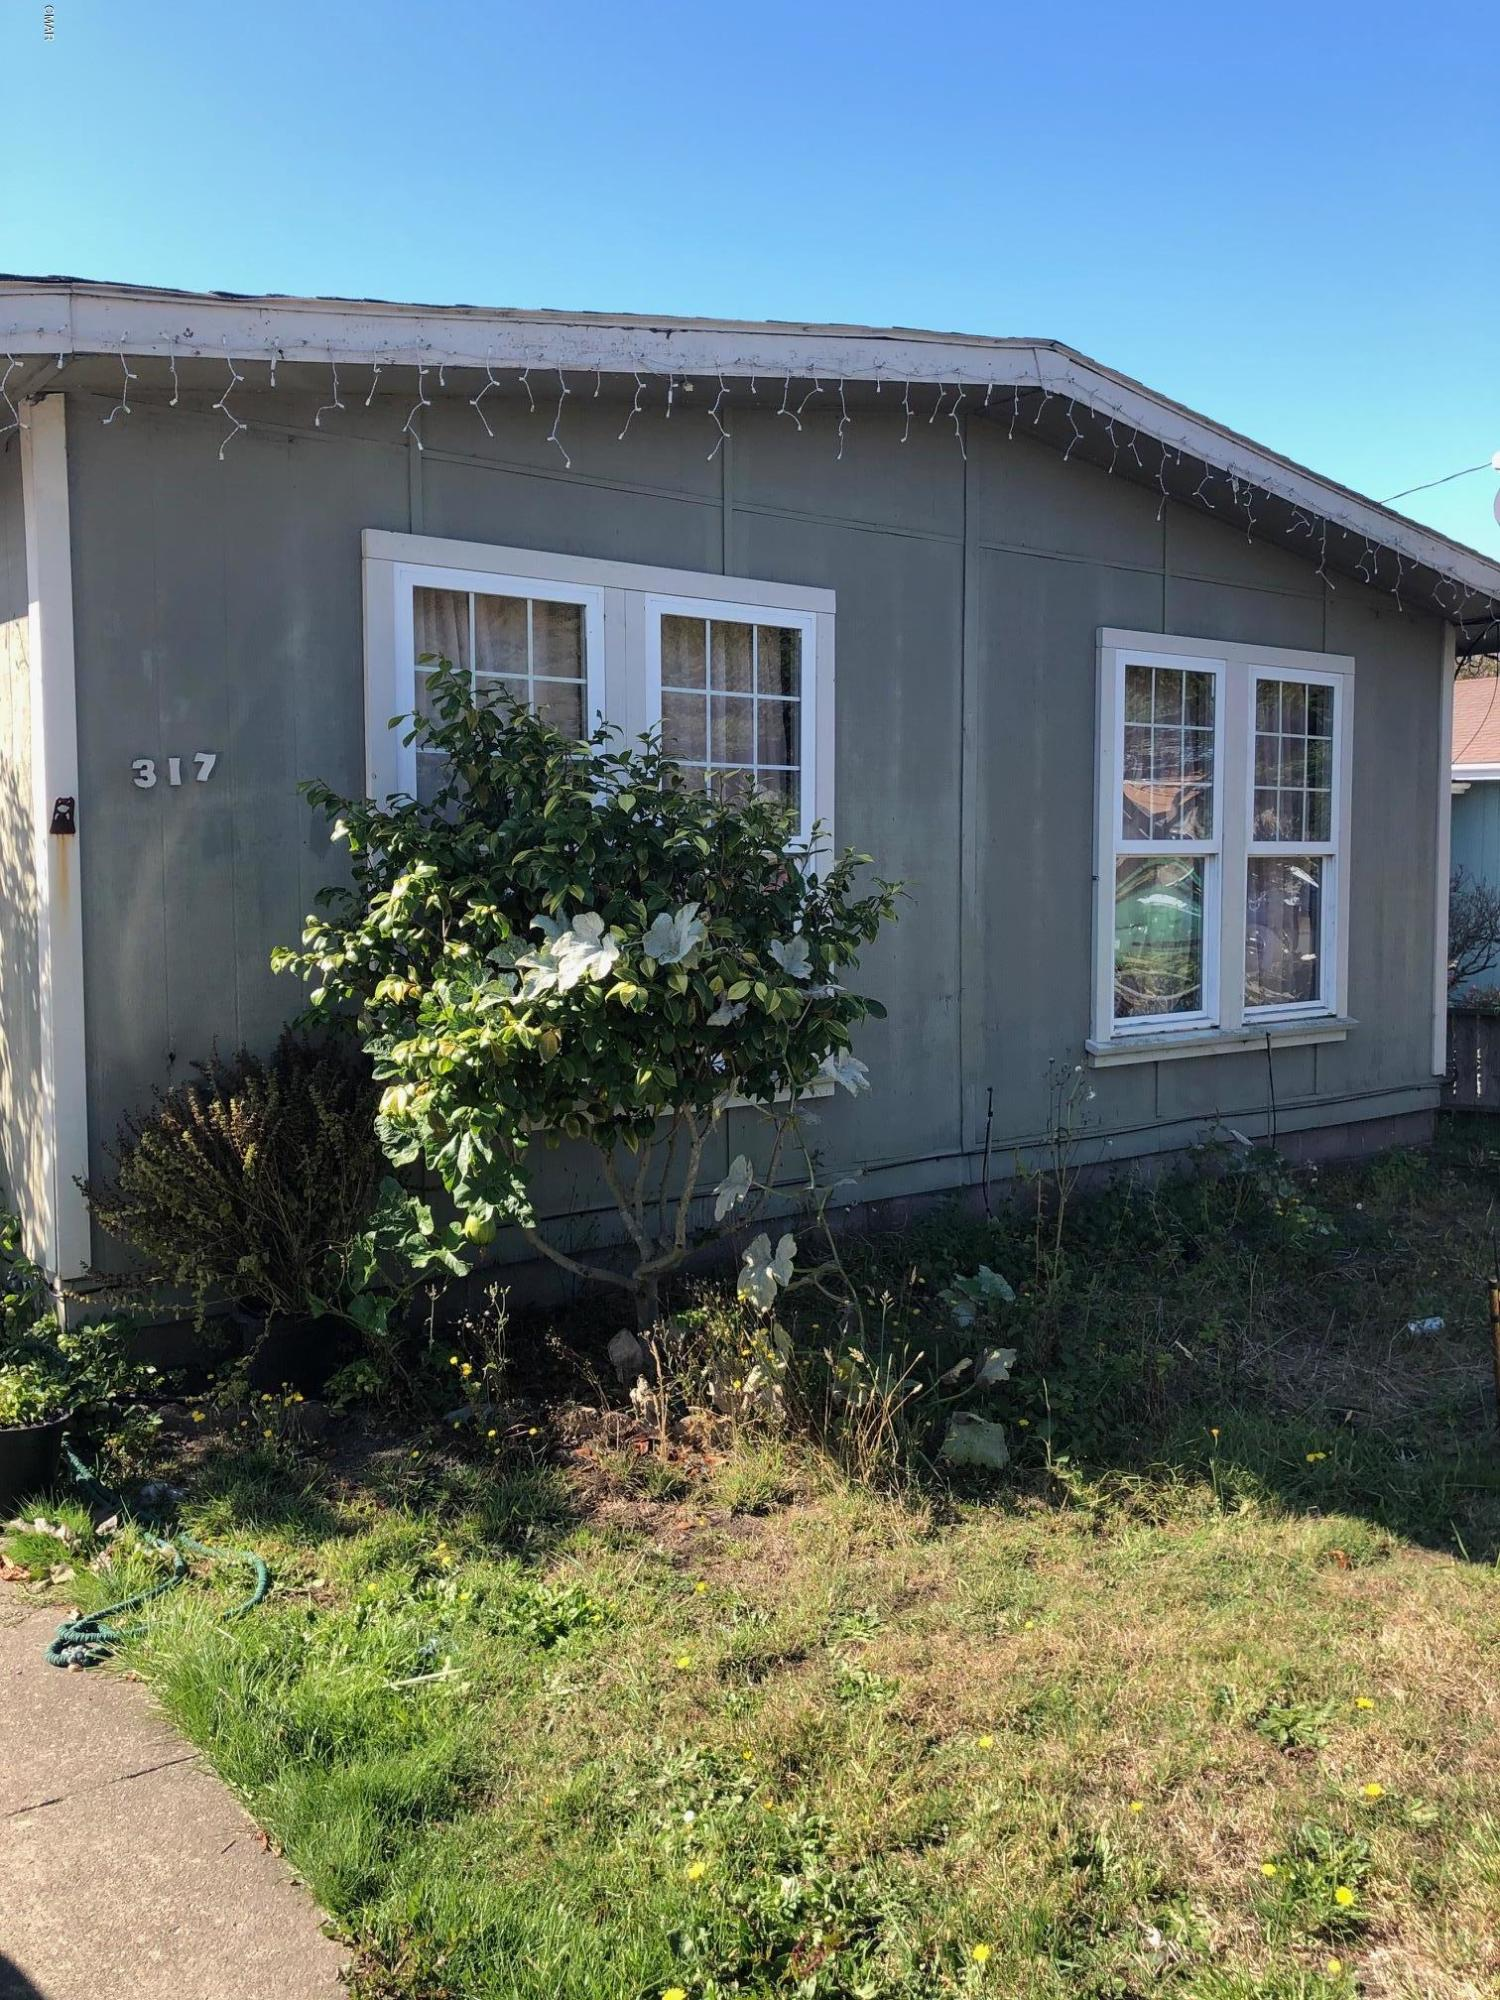 Manufactured home and detached two car garage with studio apartment above has alley access.  Two bedroom, two bath main home with off street parking. Back yard with large deck off the kitchen. Live in one and rent out the other. Just a couple blocks from CVS Community Center and Dog Park. Close to schools.